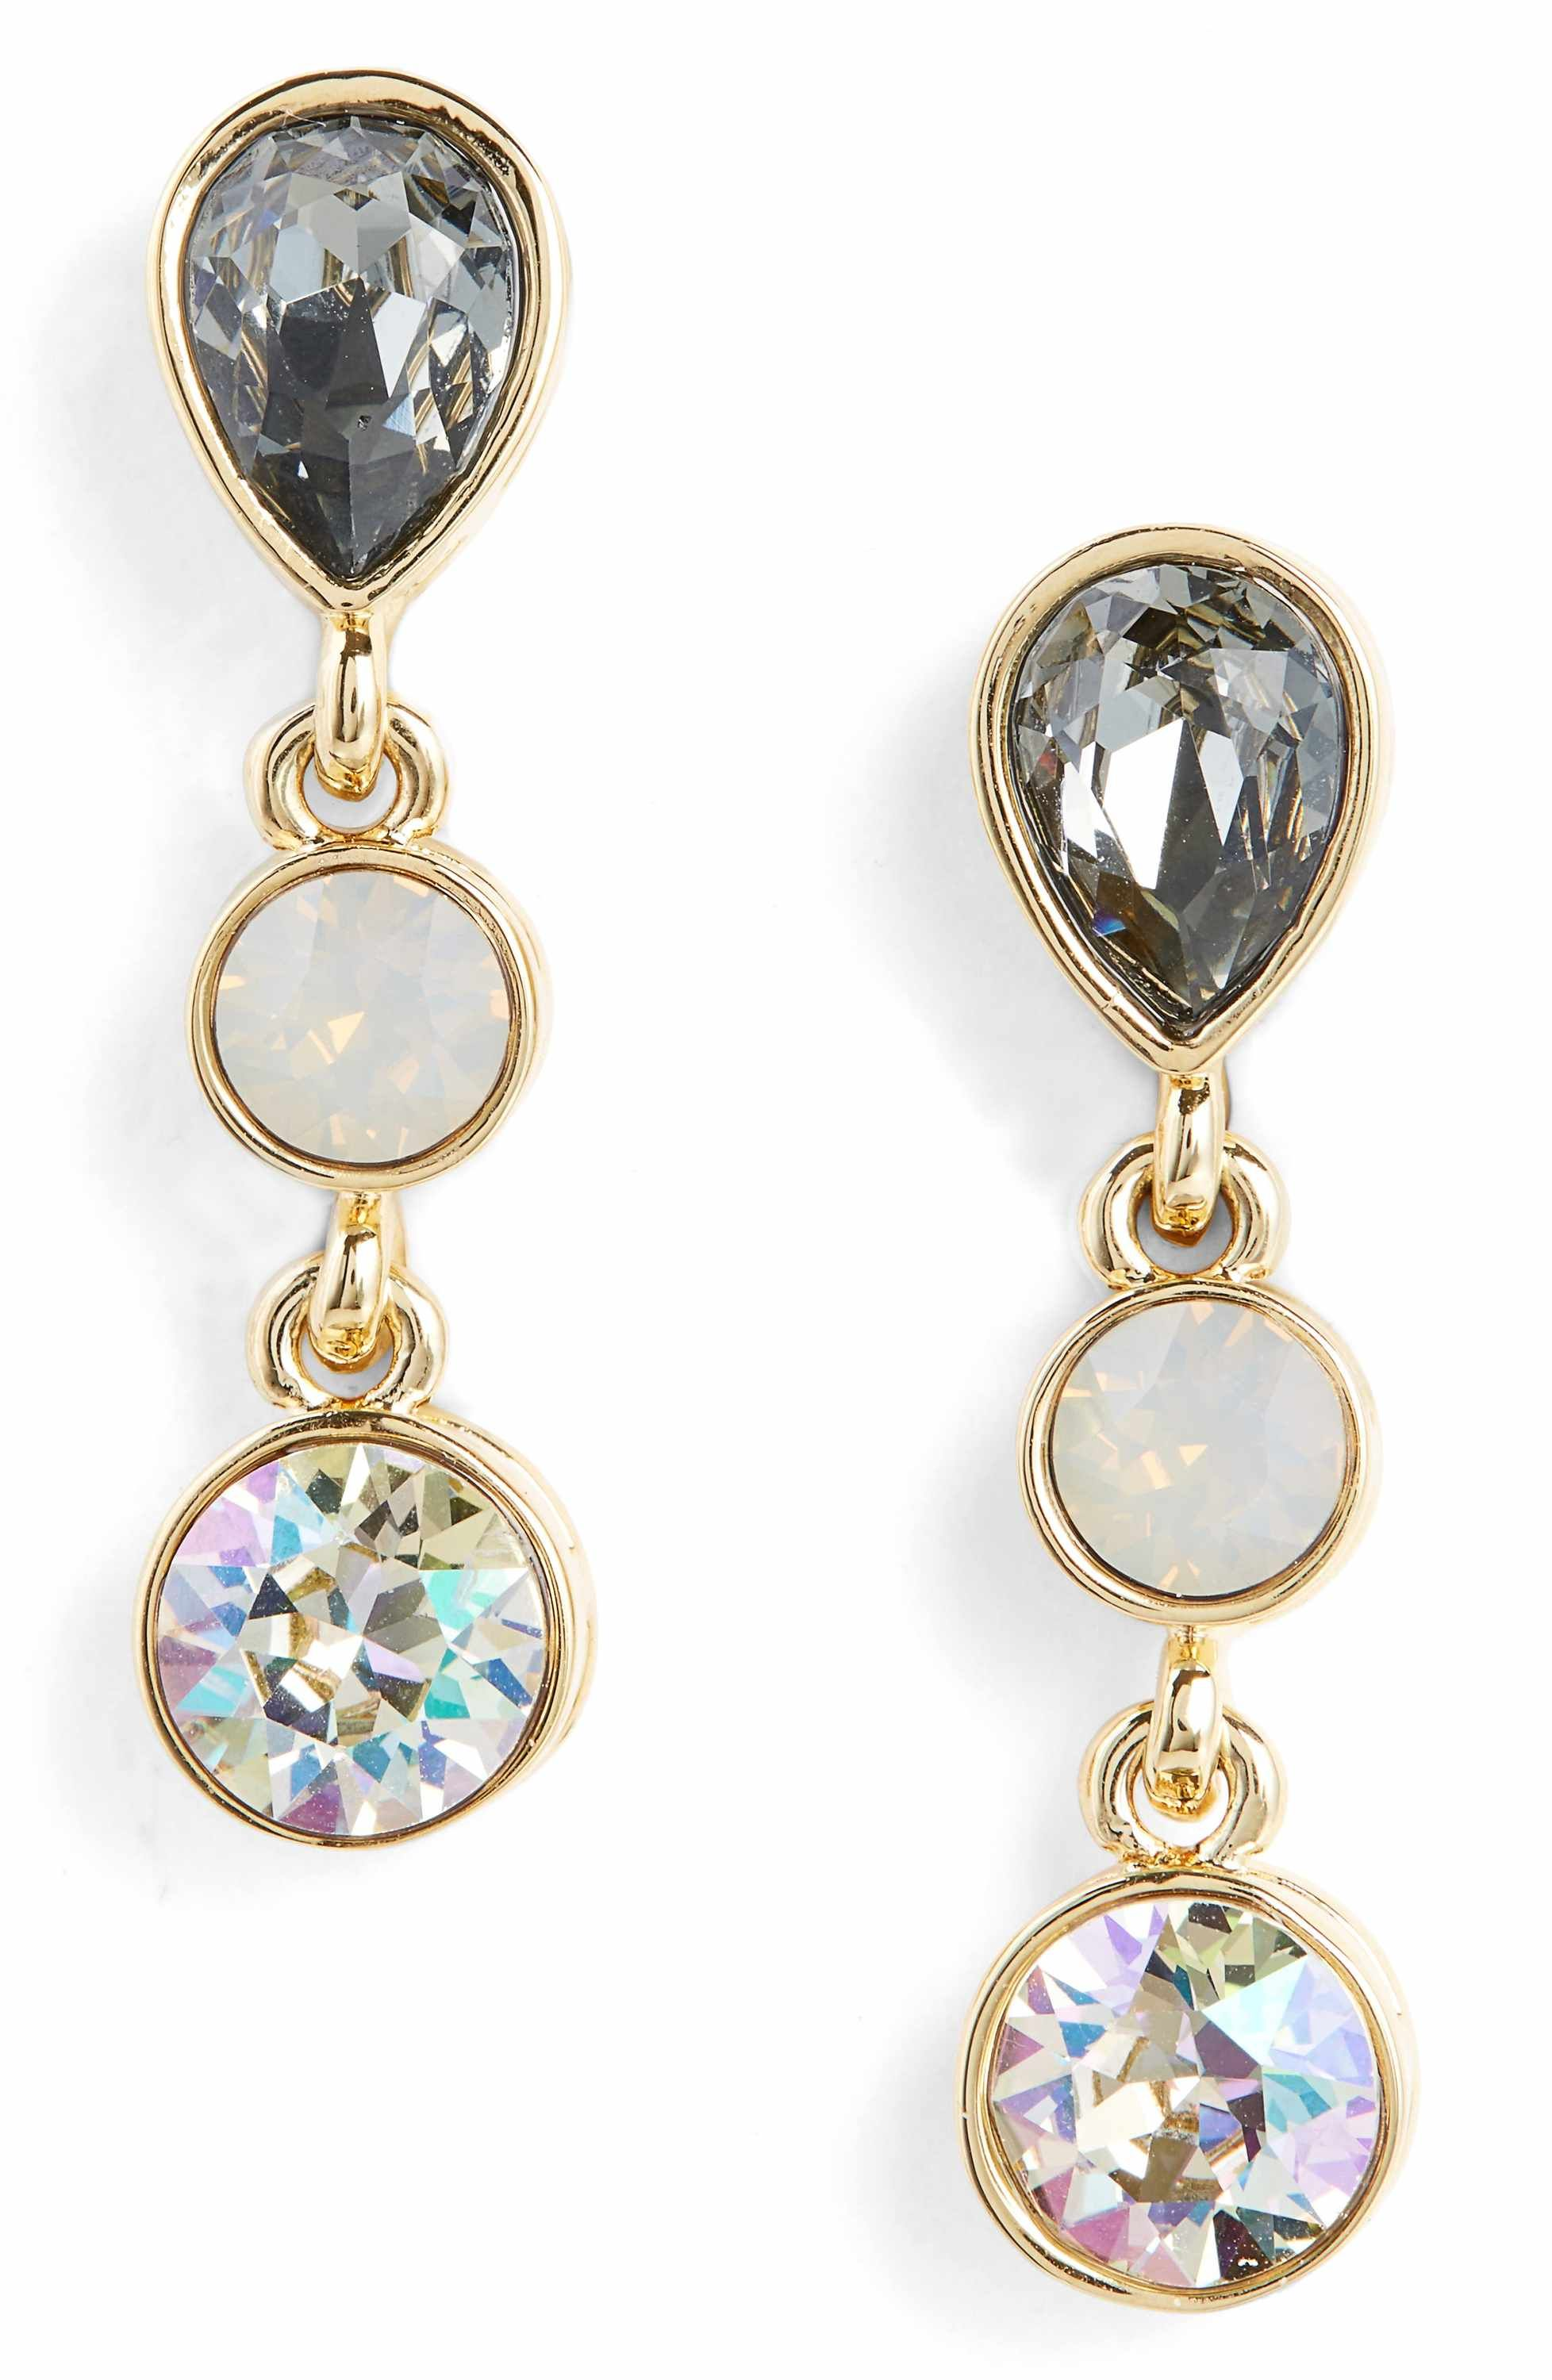 3a0b567b0 On Sale! St. John Collection Swarovski Crystal Statement Earrings ...